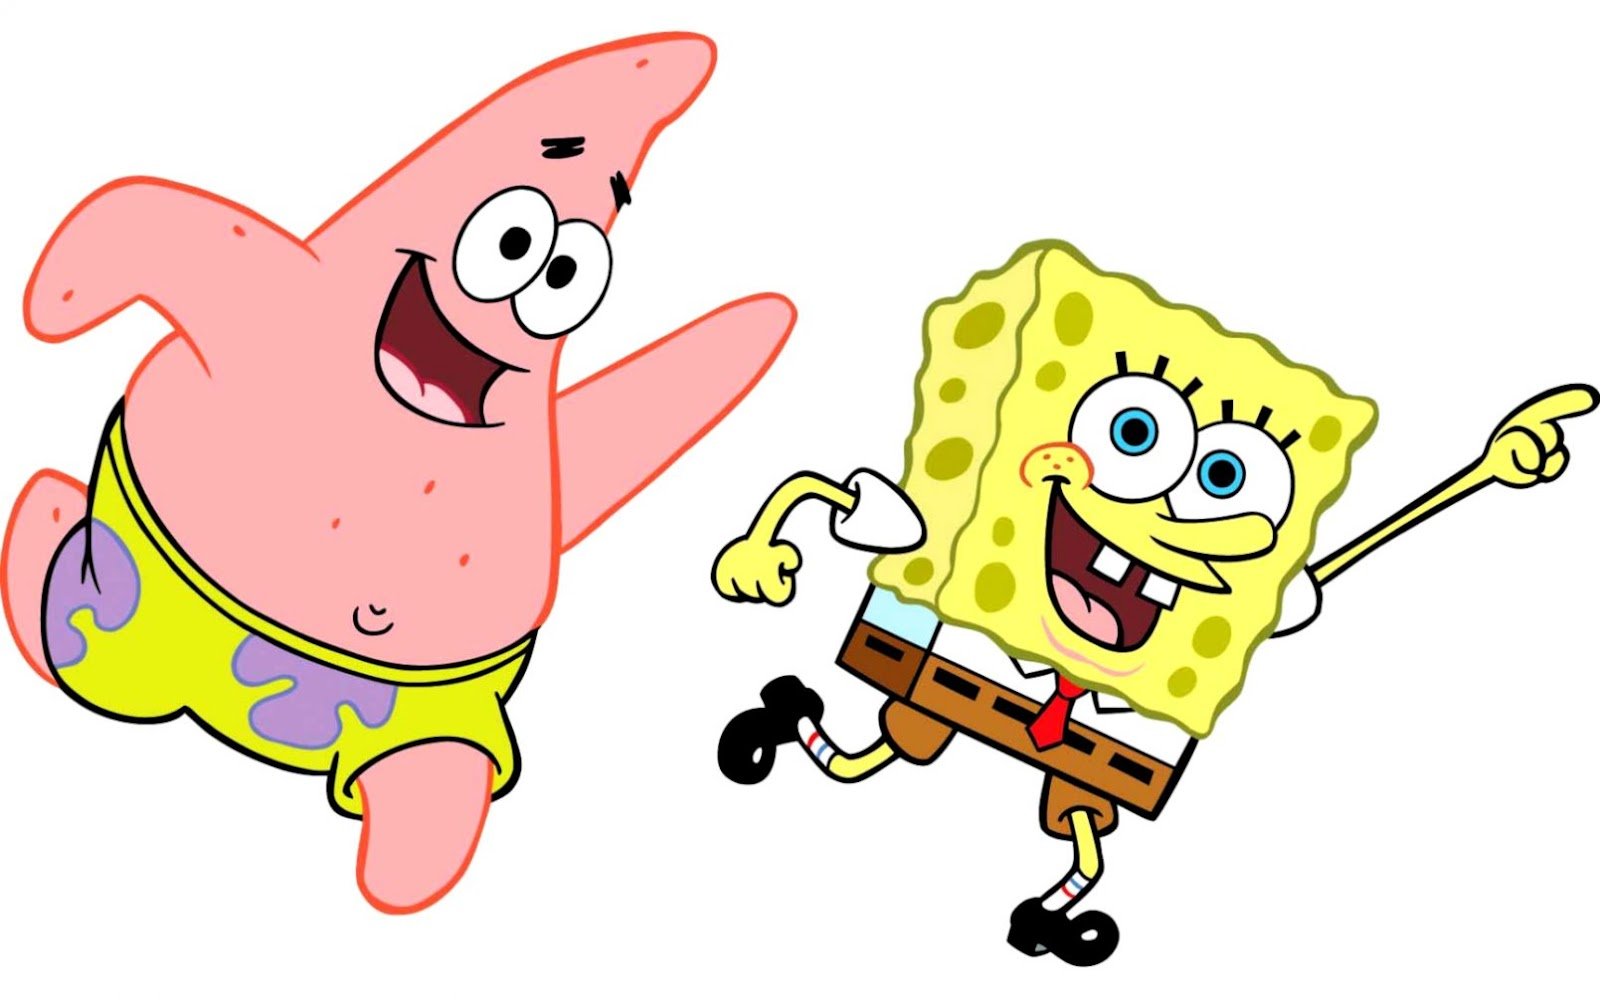 Spongebob Squarepants Latest Hd Wallpapers Free Download | HD Wallpapers Collection